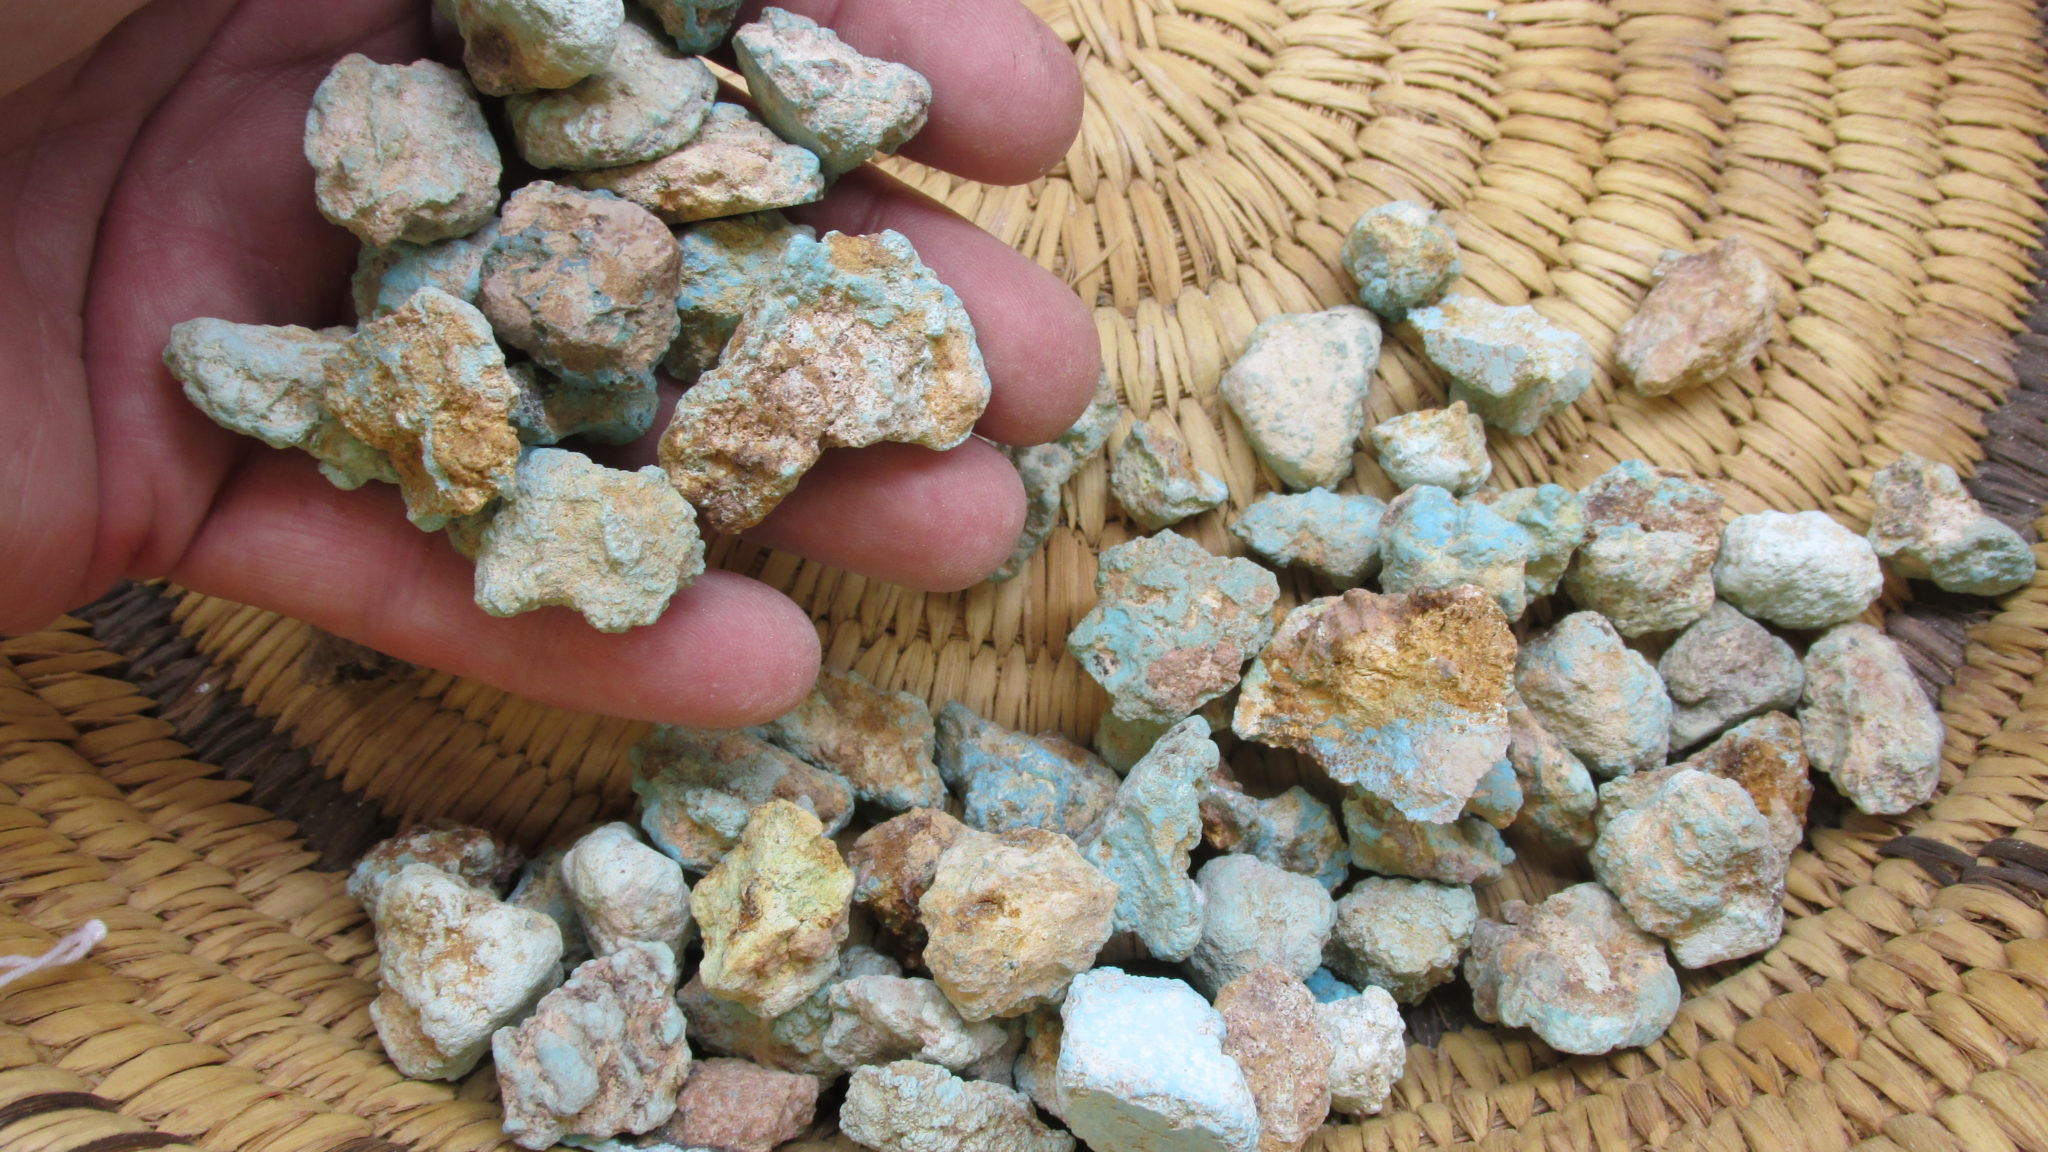 Natural Turquoise from Baja California